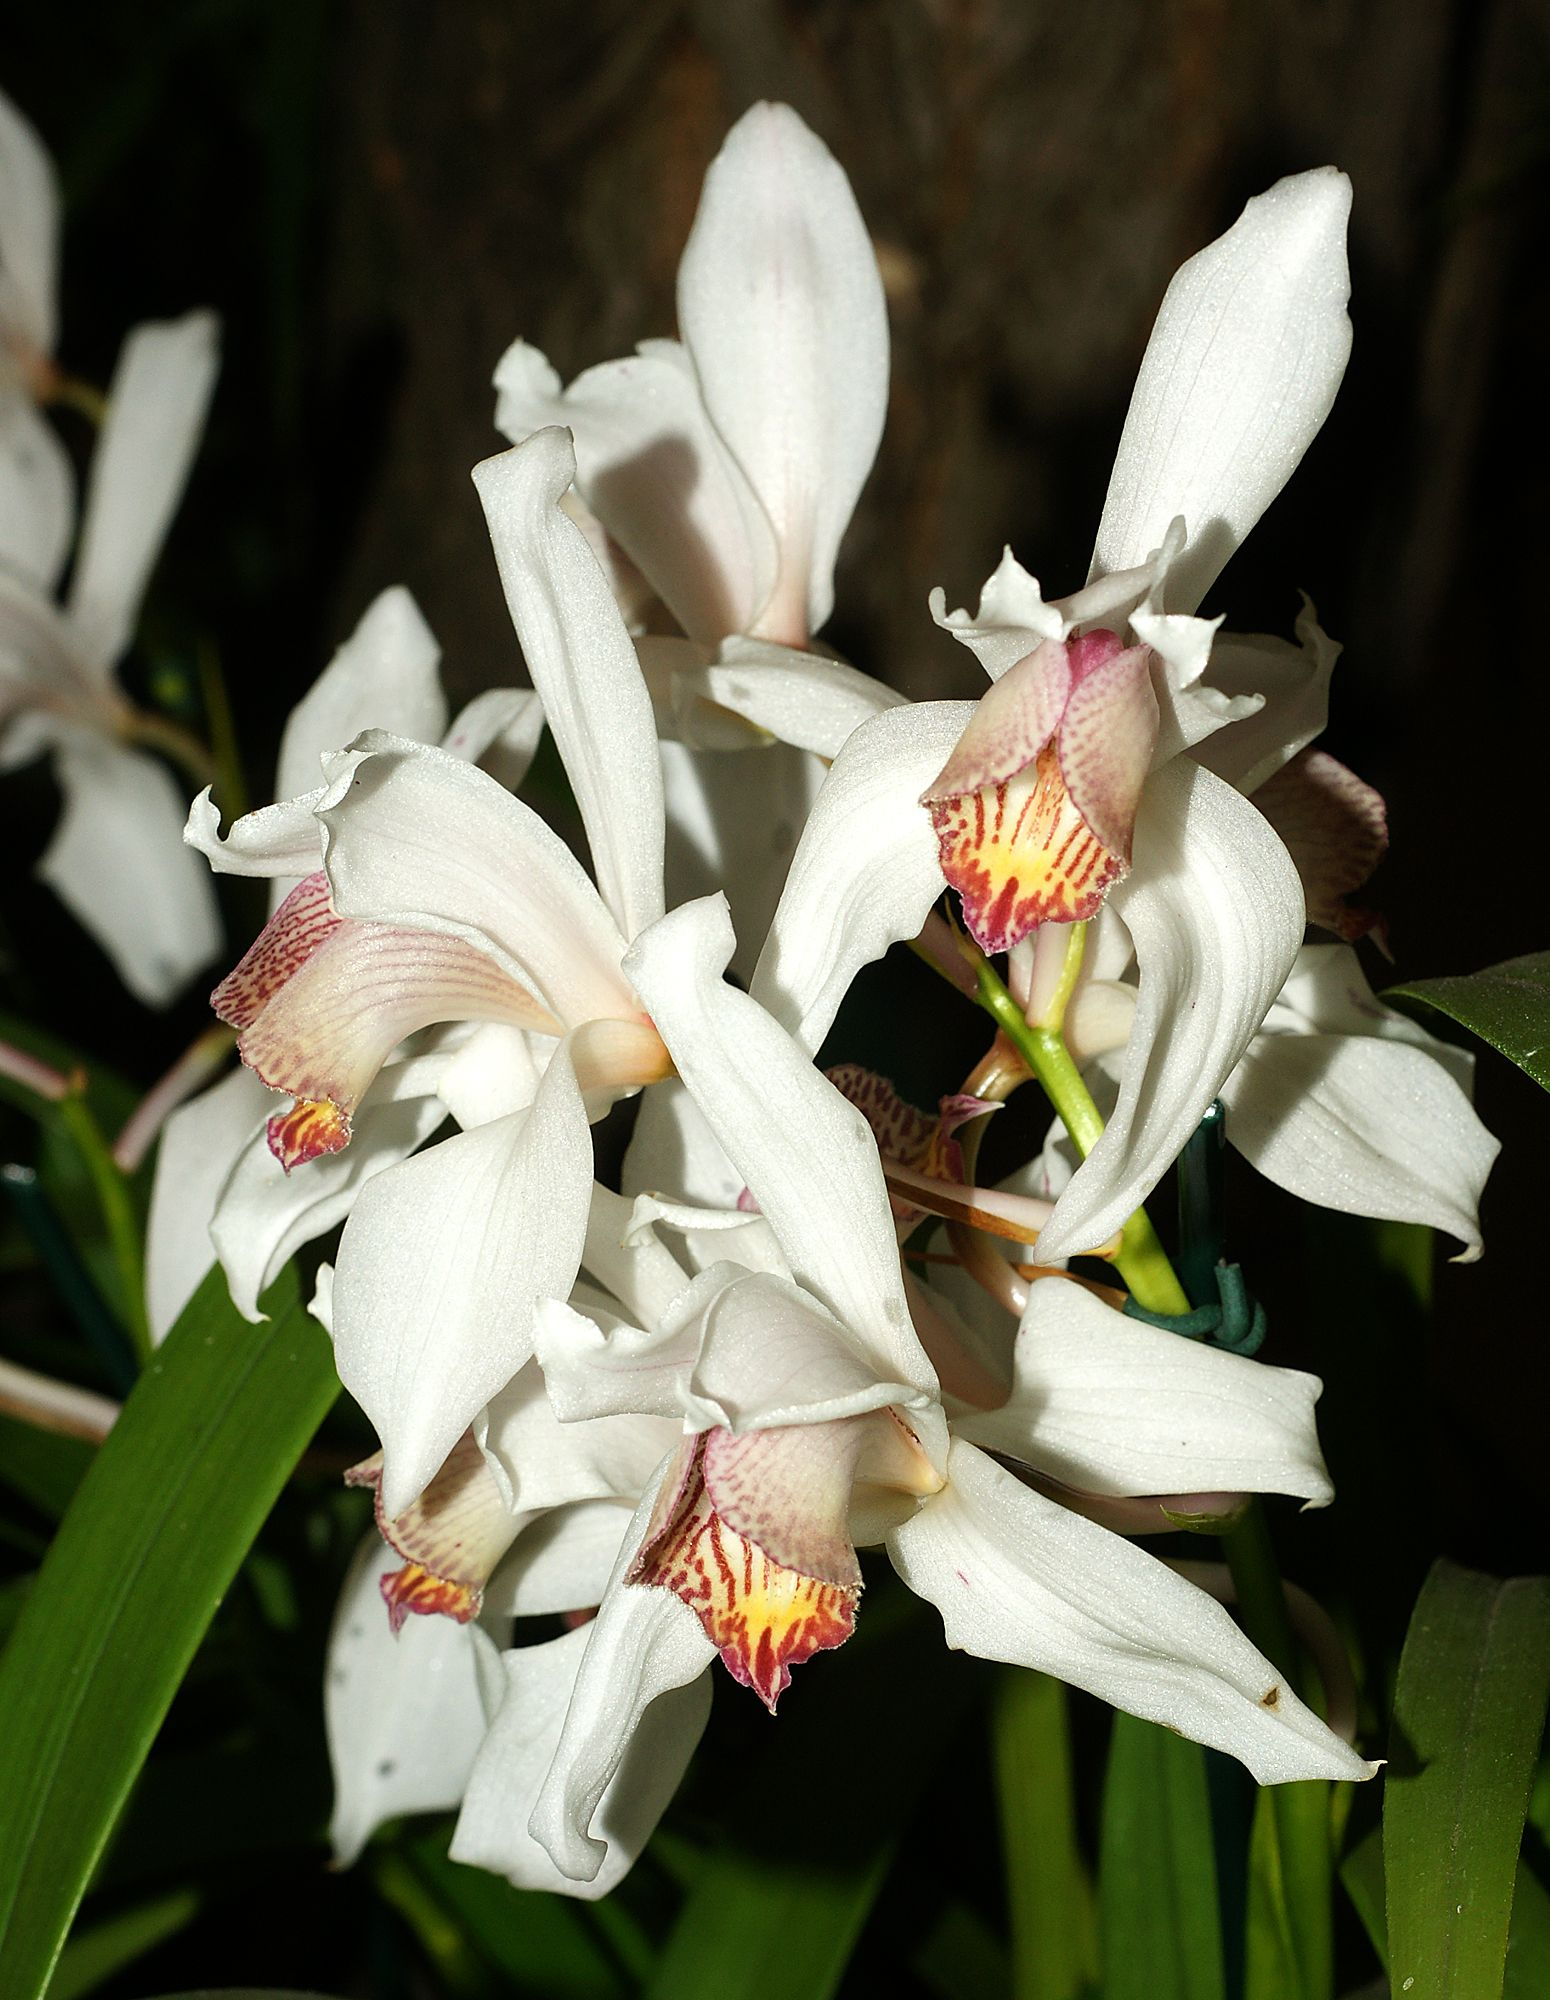 http://upload.wikimedia.org/wikipedia/commons/8/89/Cymbidium_erythrostylum_Orchi_027.jpg